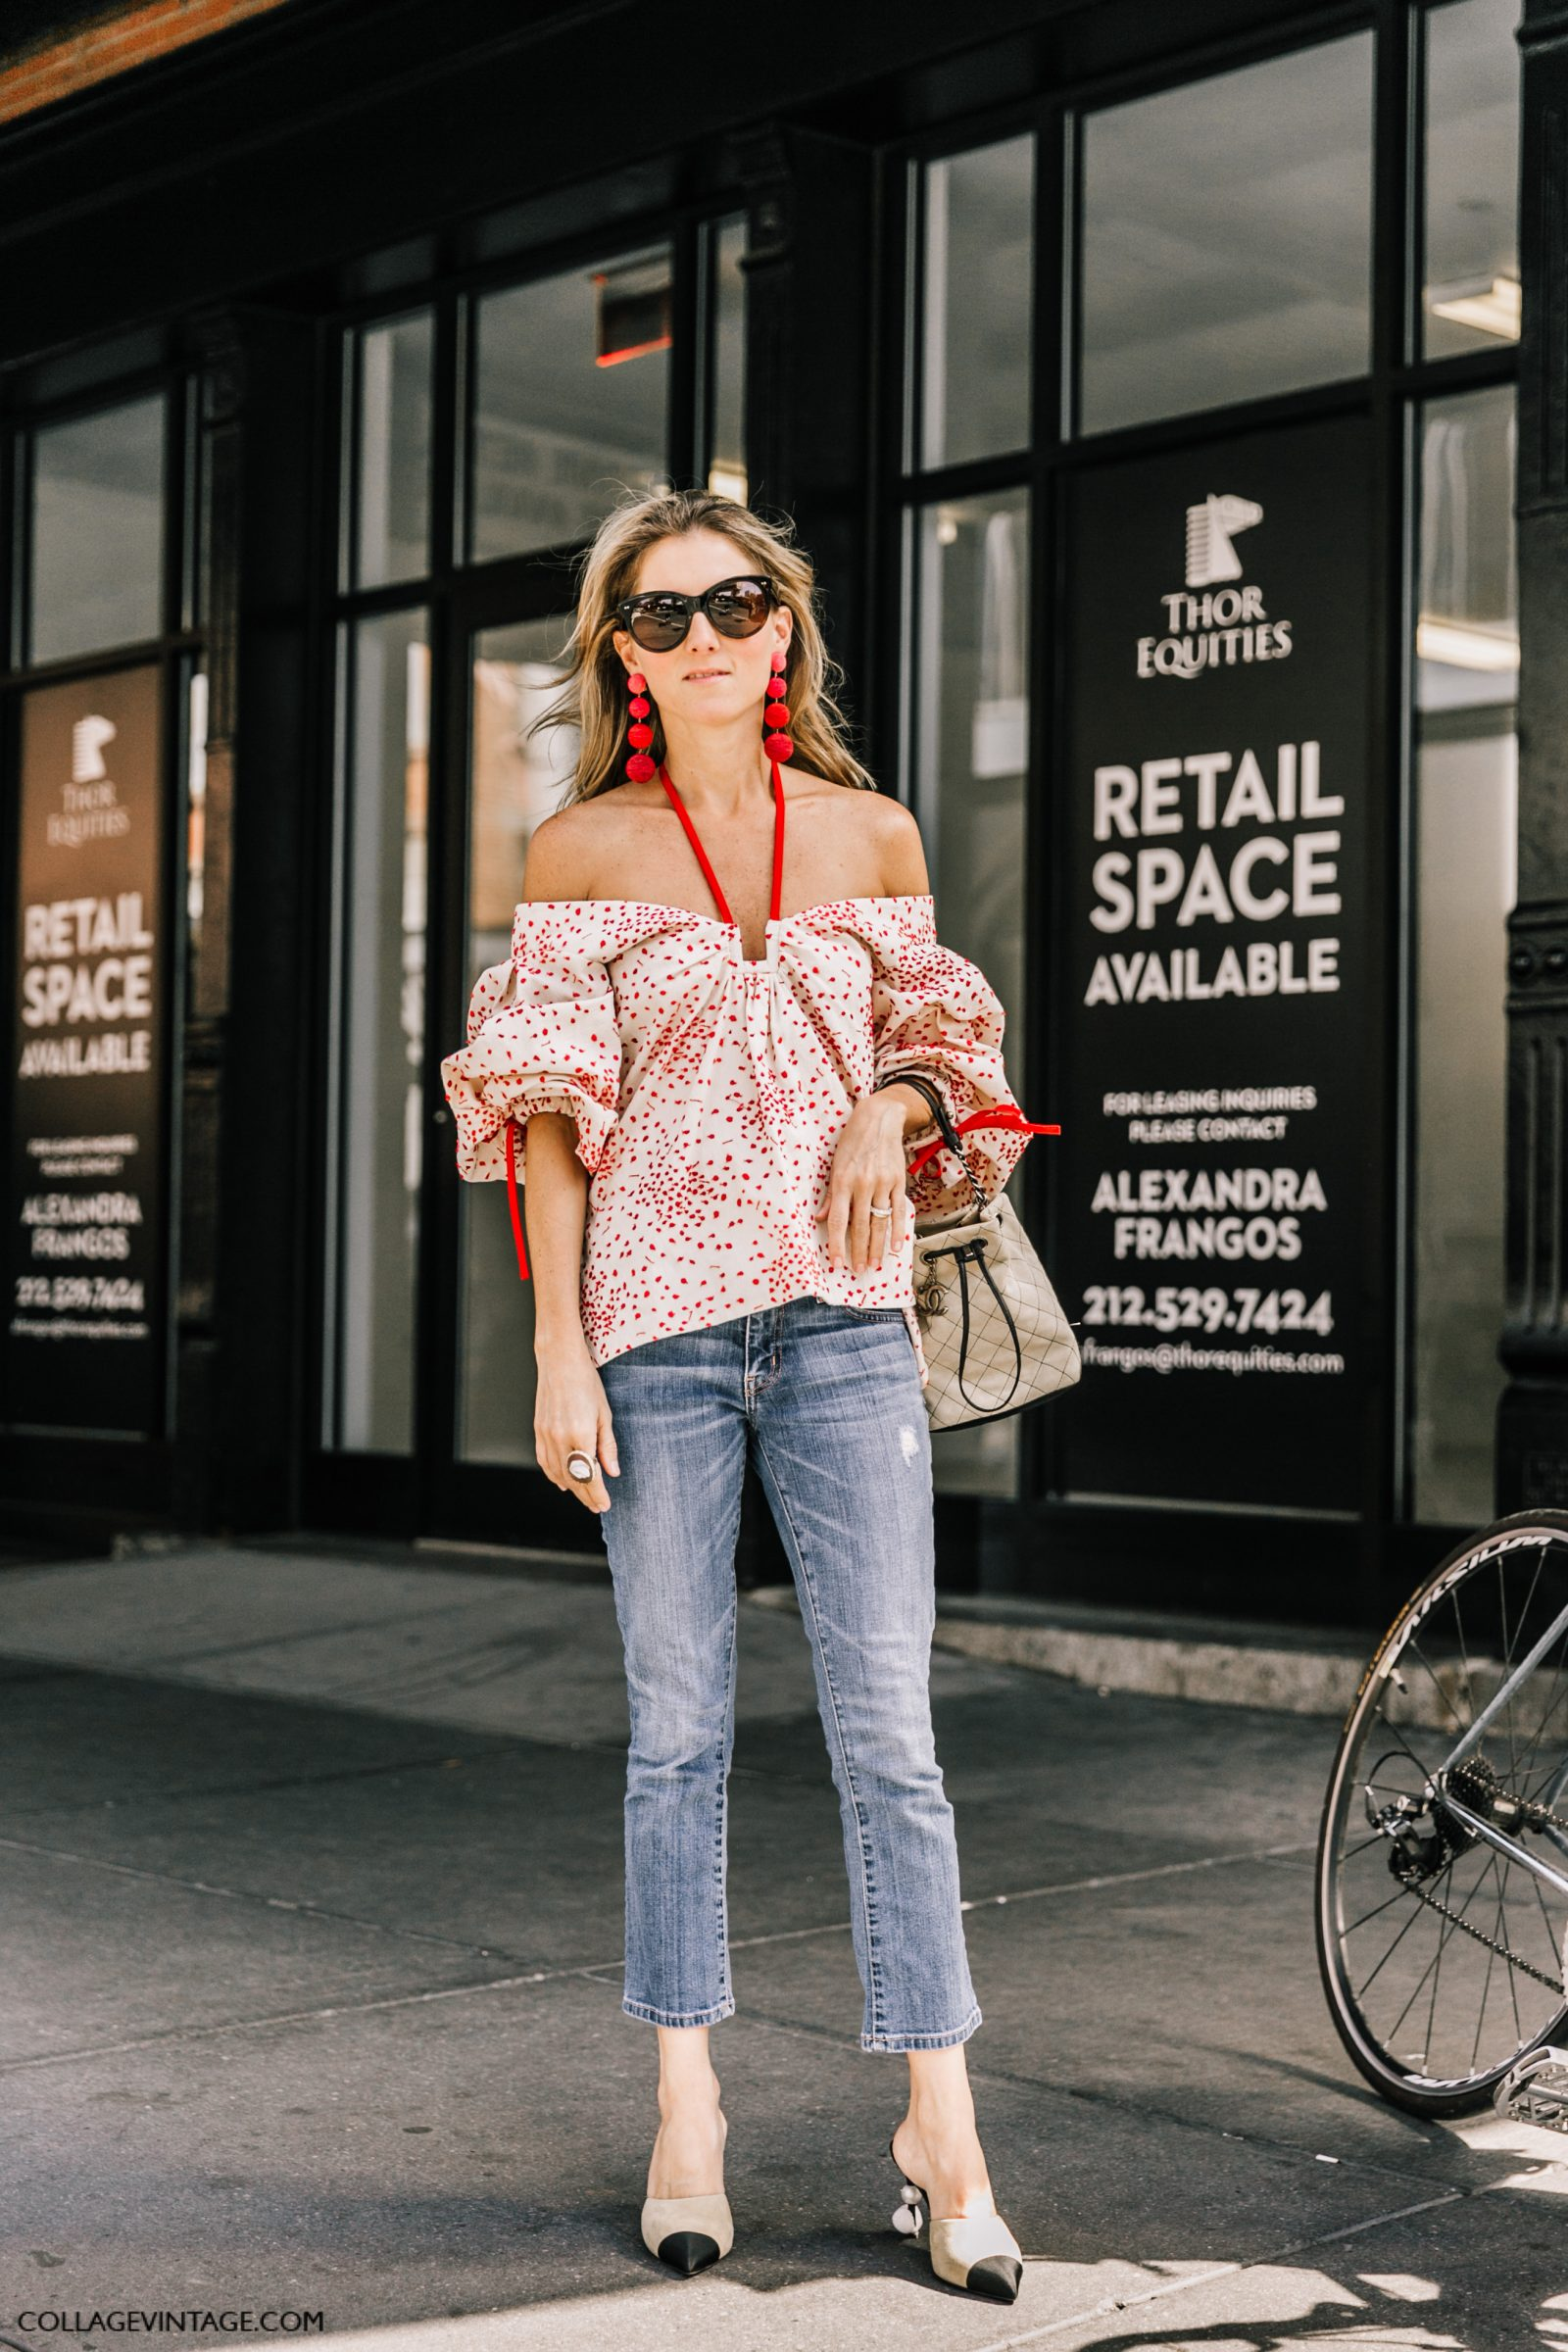 nyfw-new_york_fashion_week_ss17-street_style-outfits-collage_vintage-vintage-phillip_lim-the-row-proenza_schouler-rossie_aussolin-129